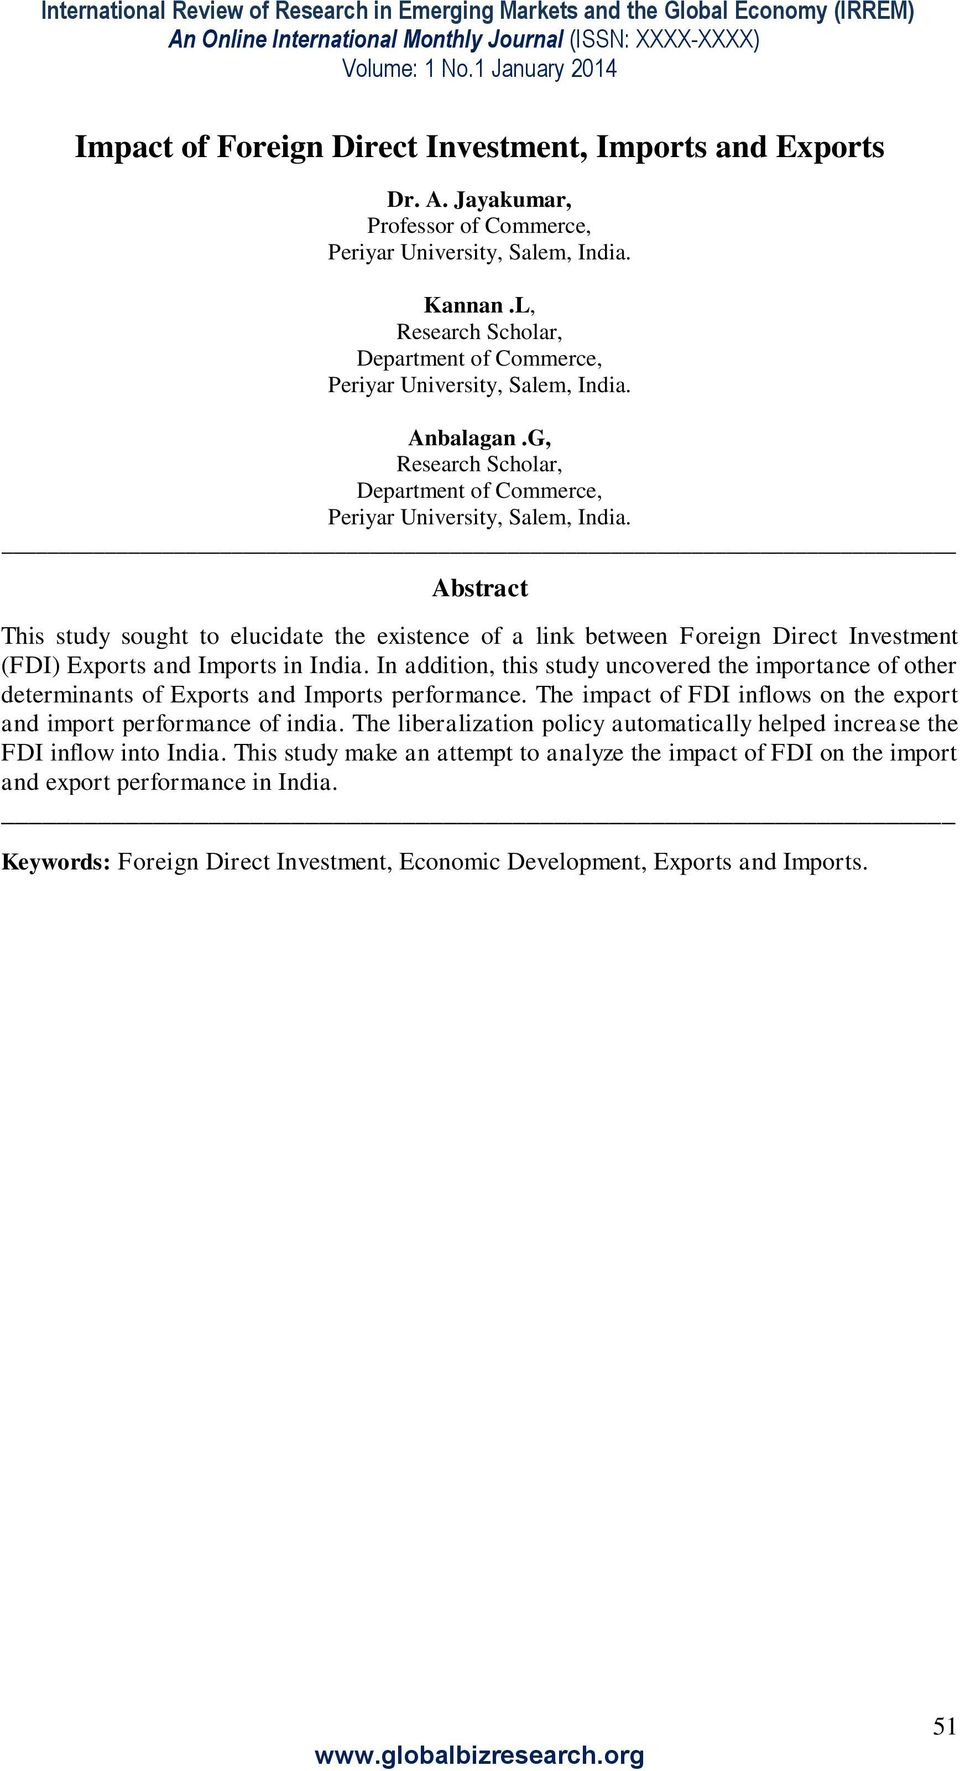 Abstract This study sought to elucidate the existence of a link between Foreign Direct Investment (FDI) Exports and Imports in India.